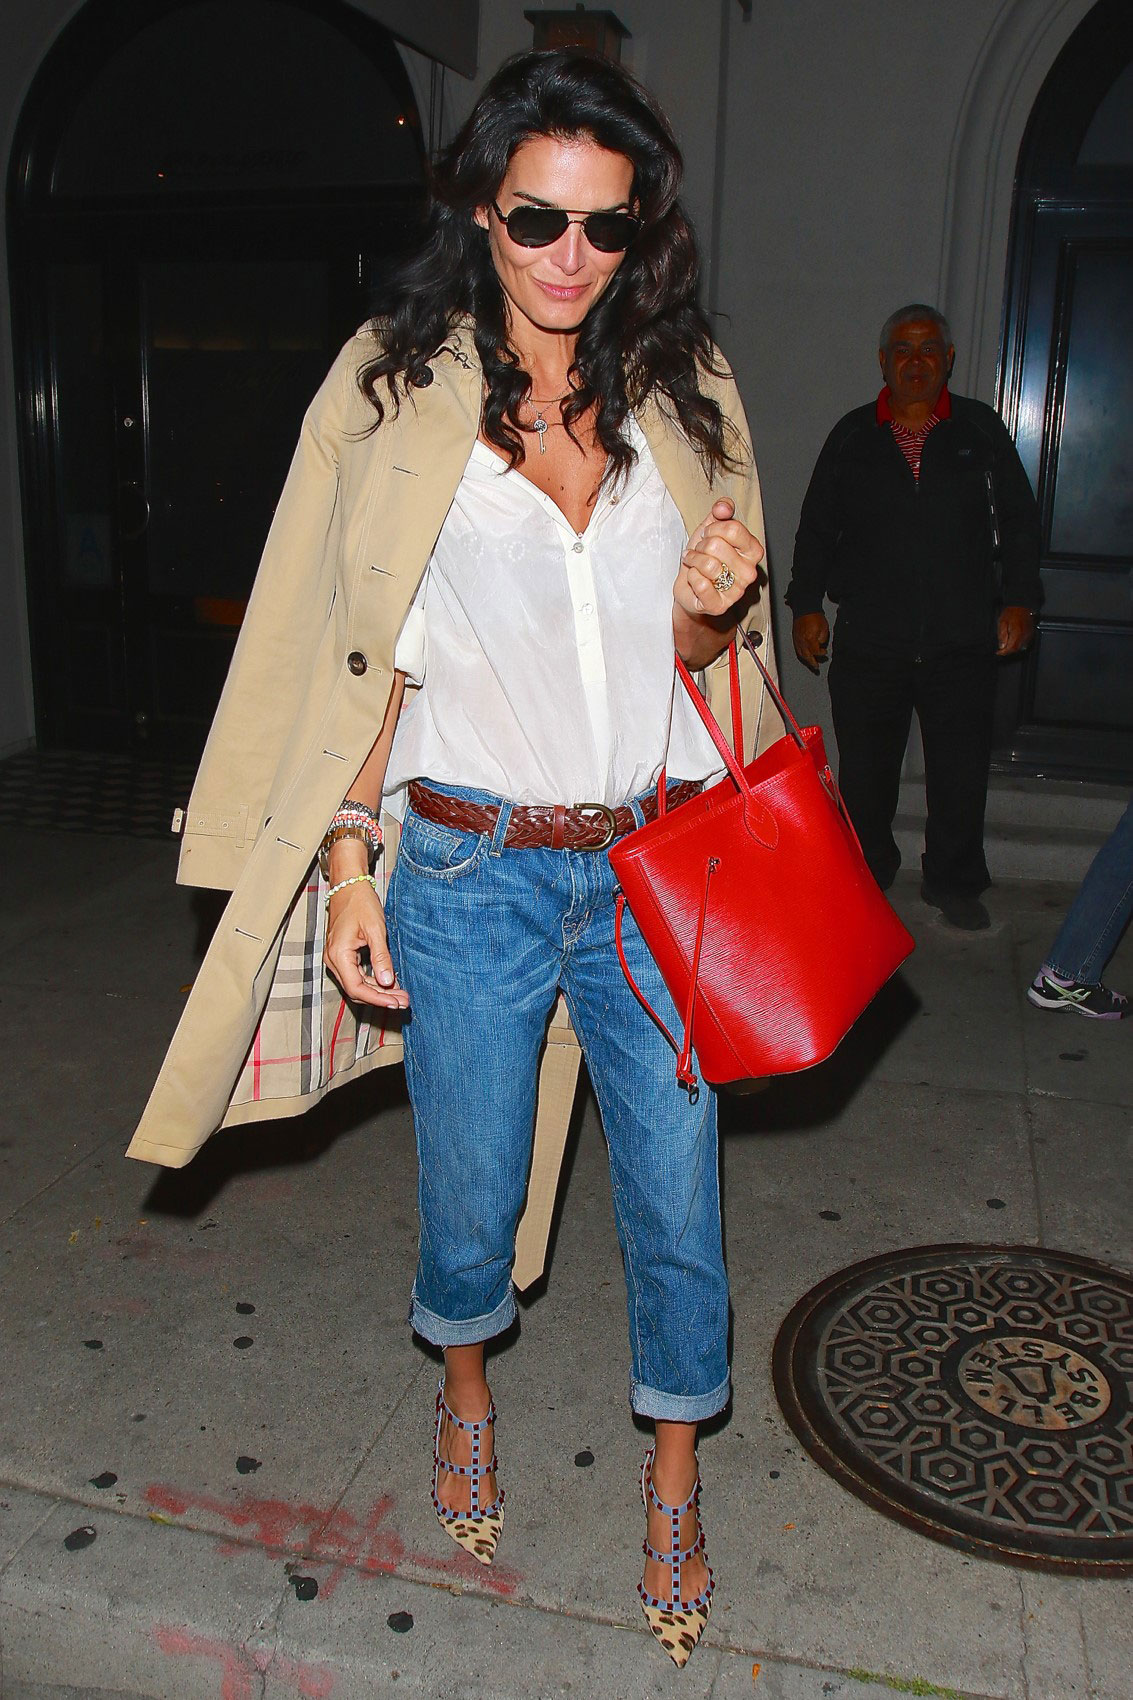 Actress Angie Harmon looks chic and sophisticated in a Burberry trench, white shirt, cuffed jeans and Rockstud heels.